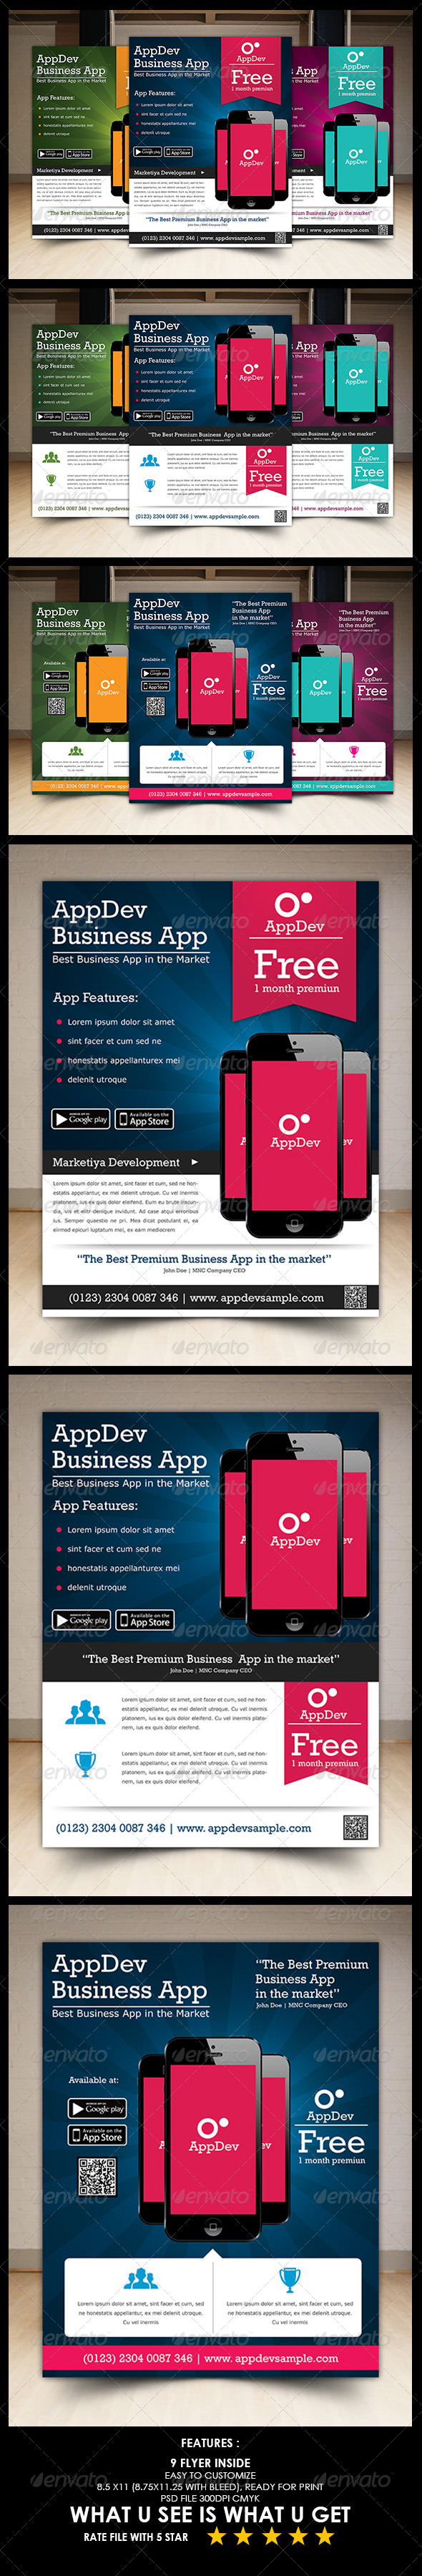 GraphicRiver Mobile App Promotion Flyer 5450641